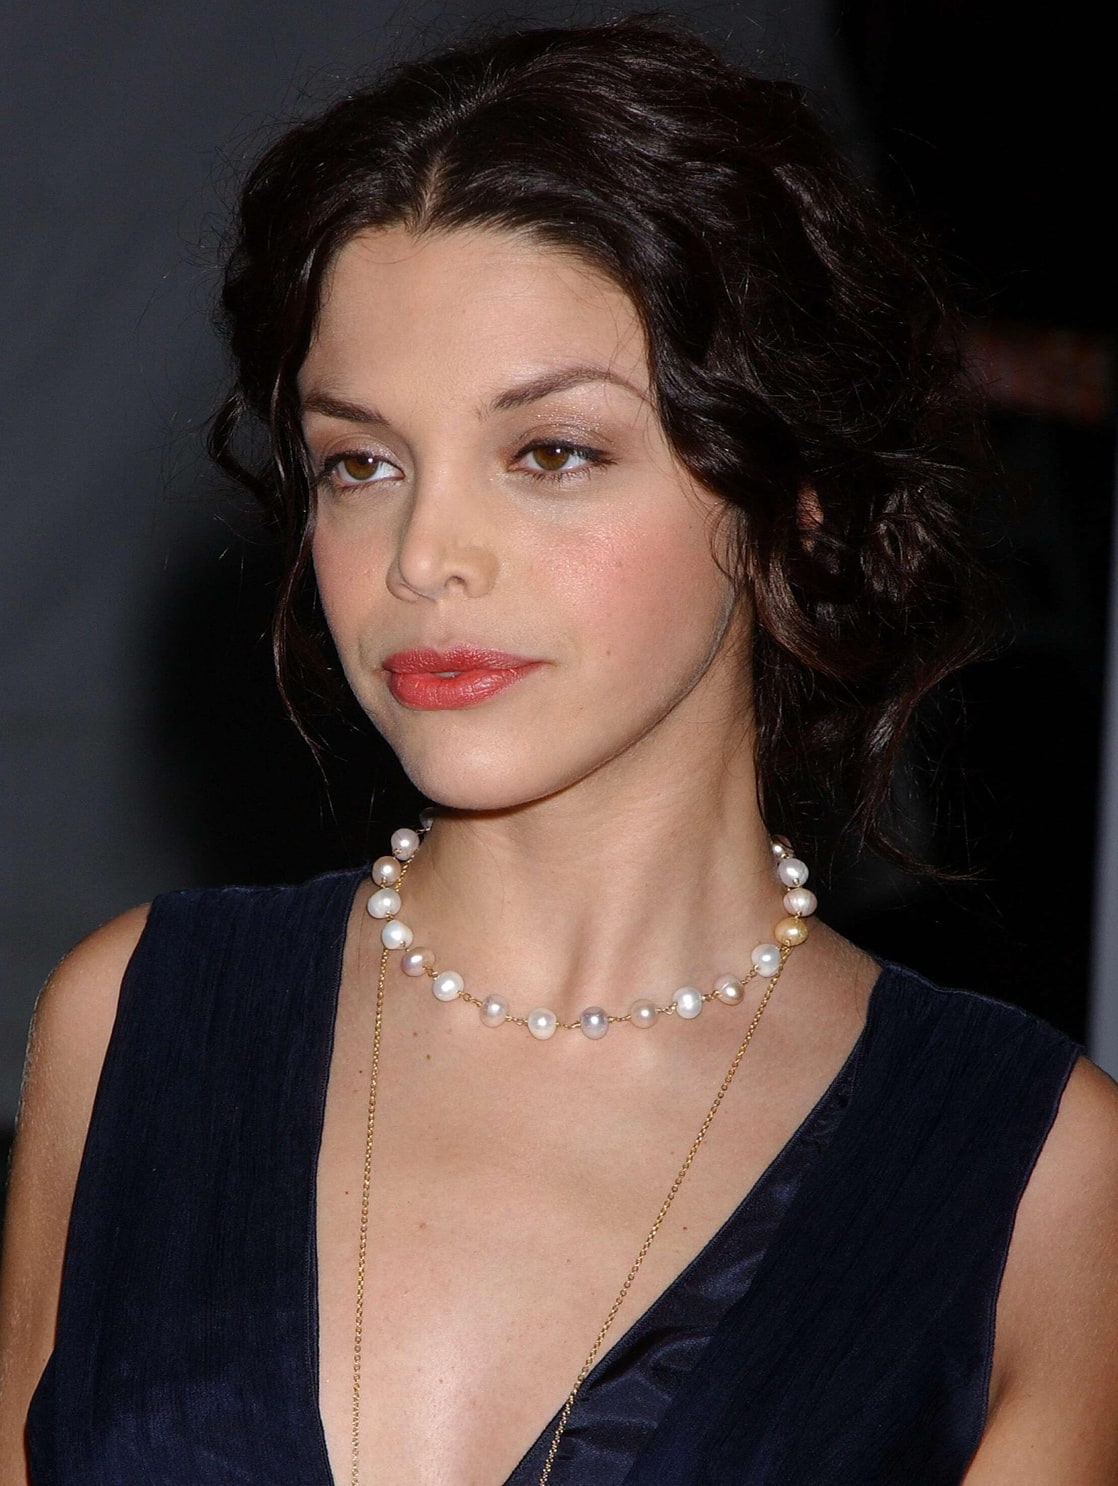 Hot actress Vanessa Ferlito wearing expensive ornaments which give her perfect looks